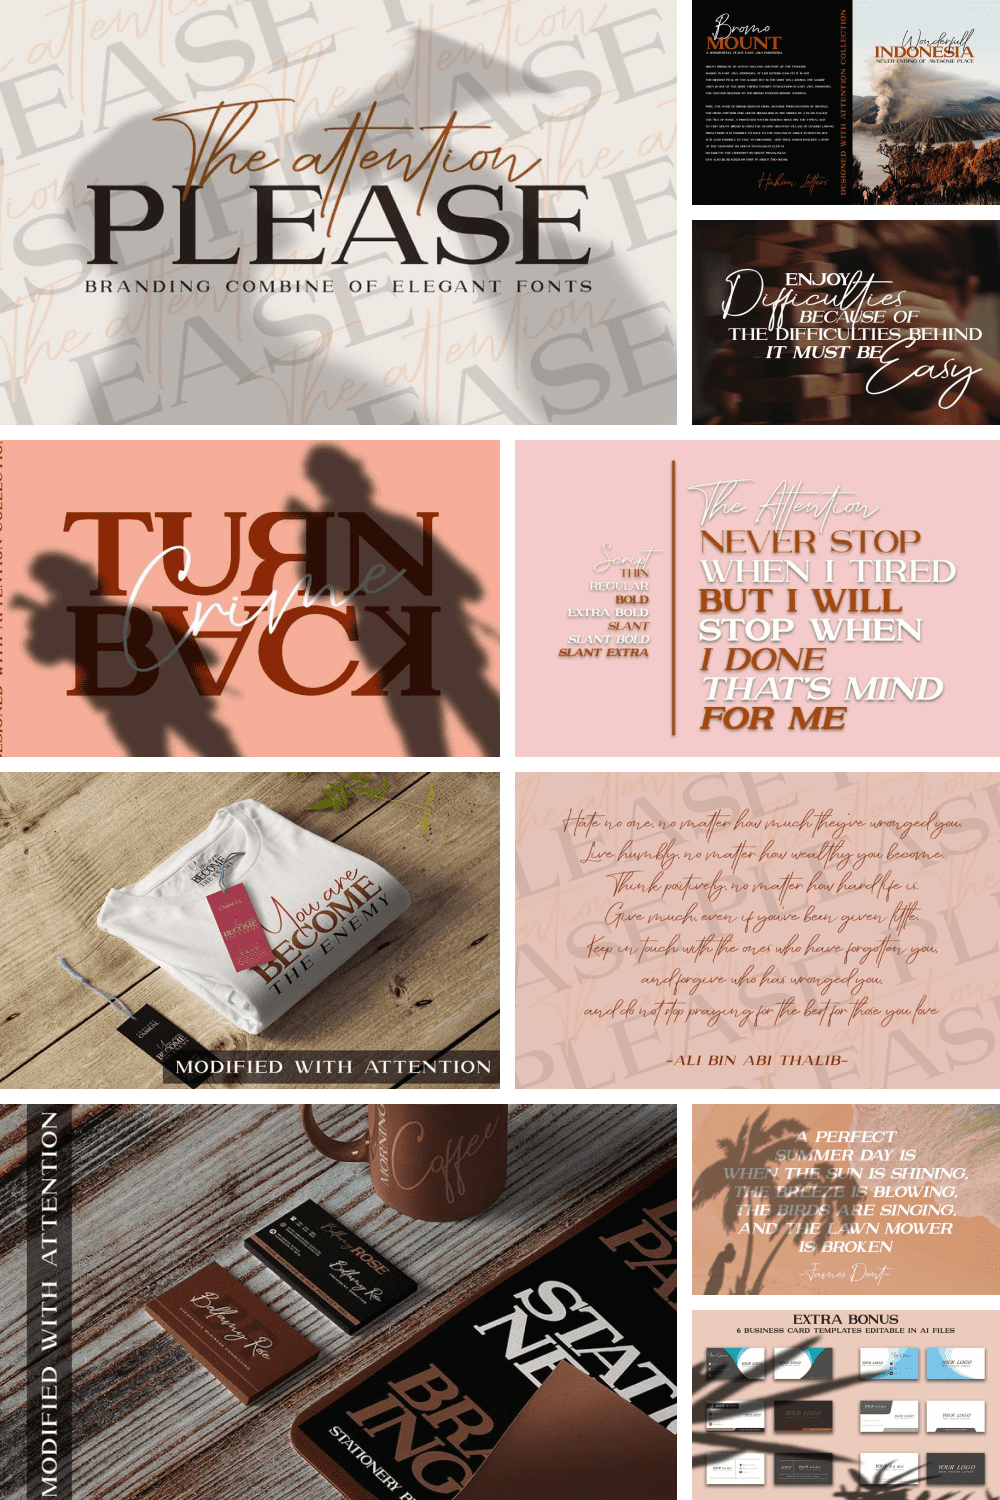 A beautiful duo font brand that makes for gorgeous logos, posters, wedding invitations, blog posts, social media, and more.